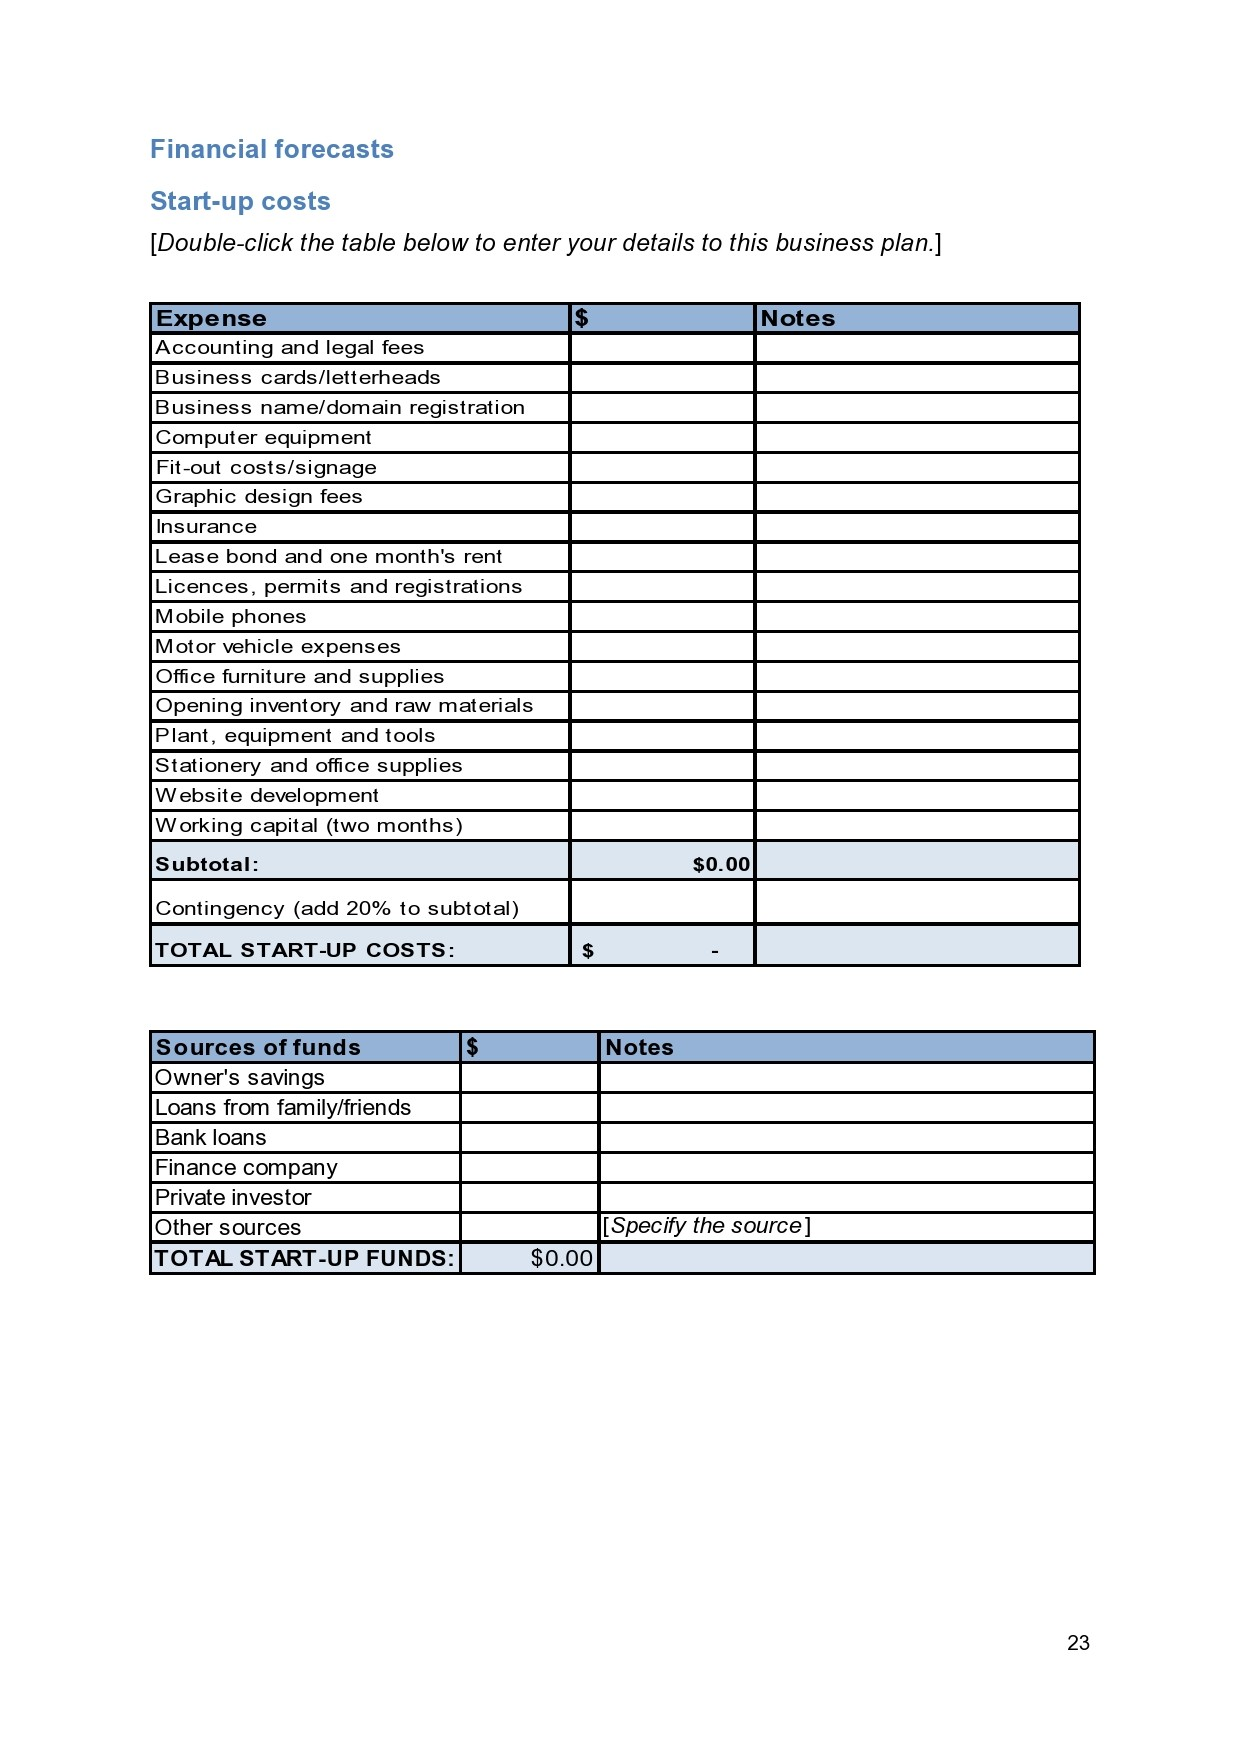 Free financial projections template 18